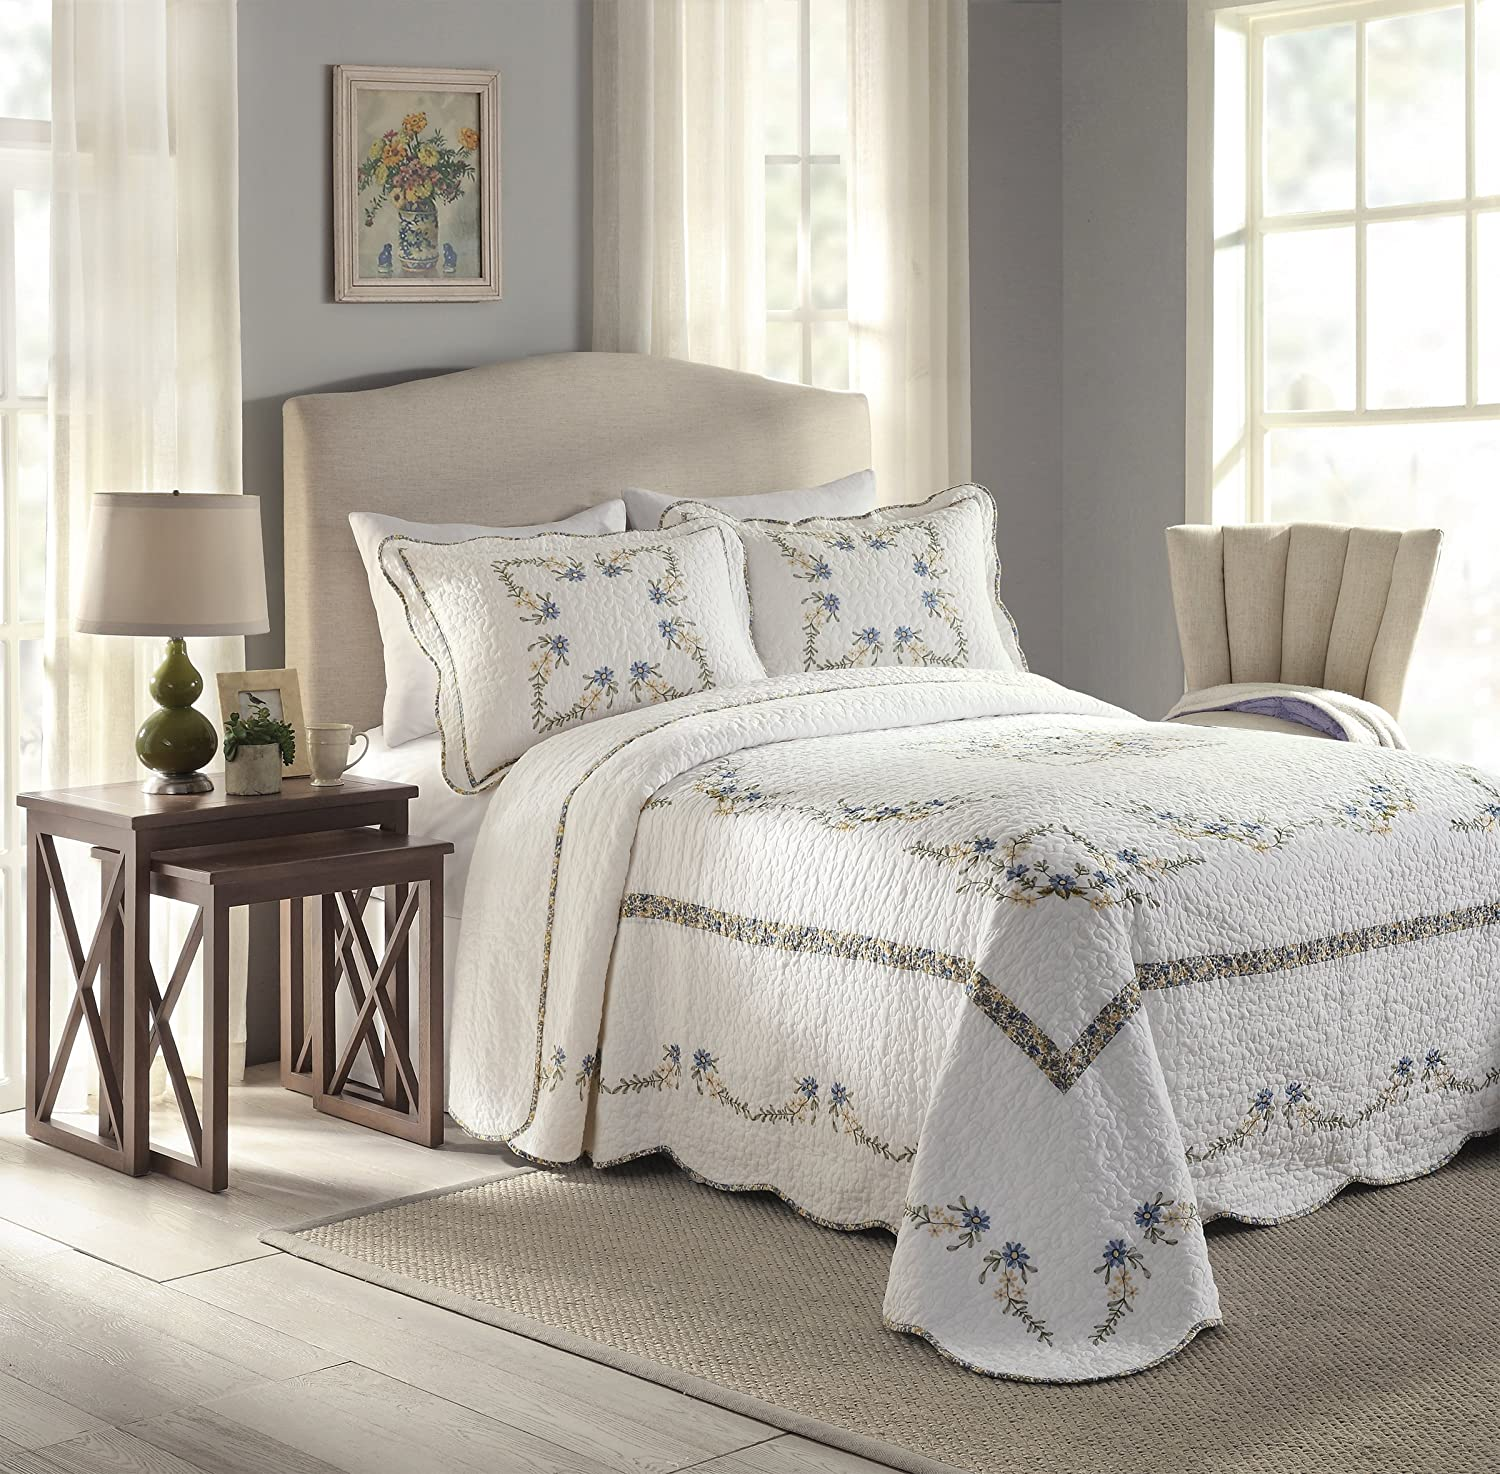 MODERN HEIRLOOM Collection Heather Cotton Filled Bedspread, Standard Sham 20 X 26-Inch Peking Handicraft Inc. 80PHS021B10C1501